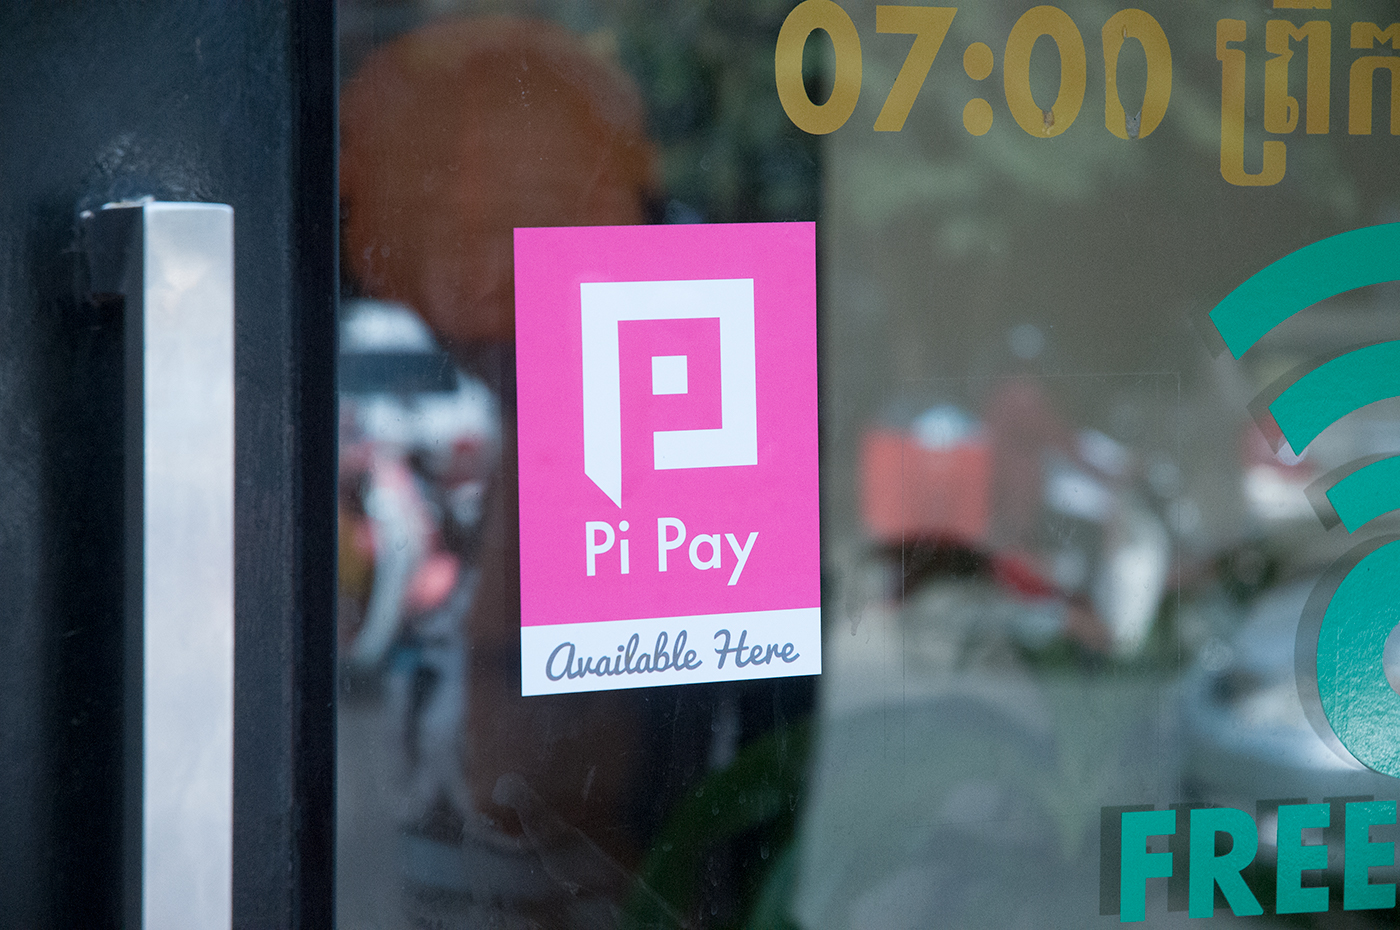 Pi Pay provides not only mobile payment but also big discount